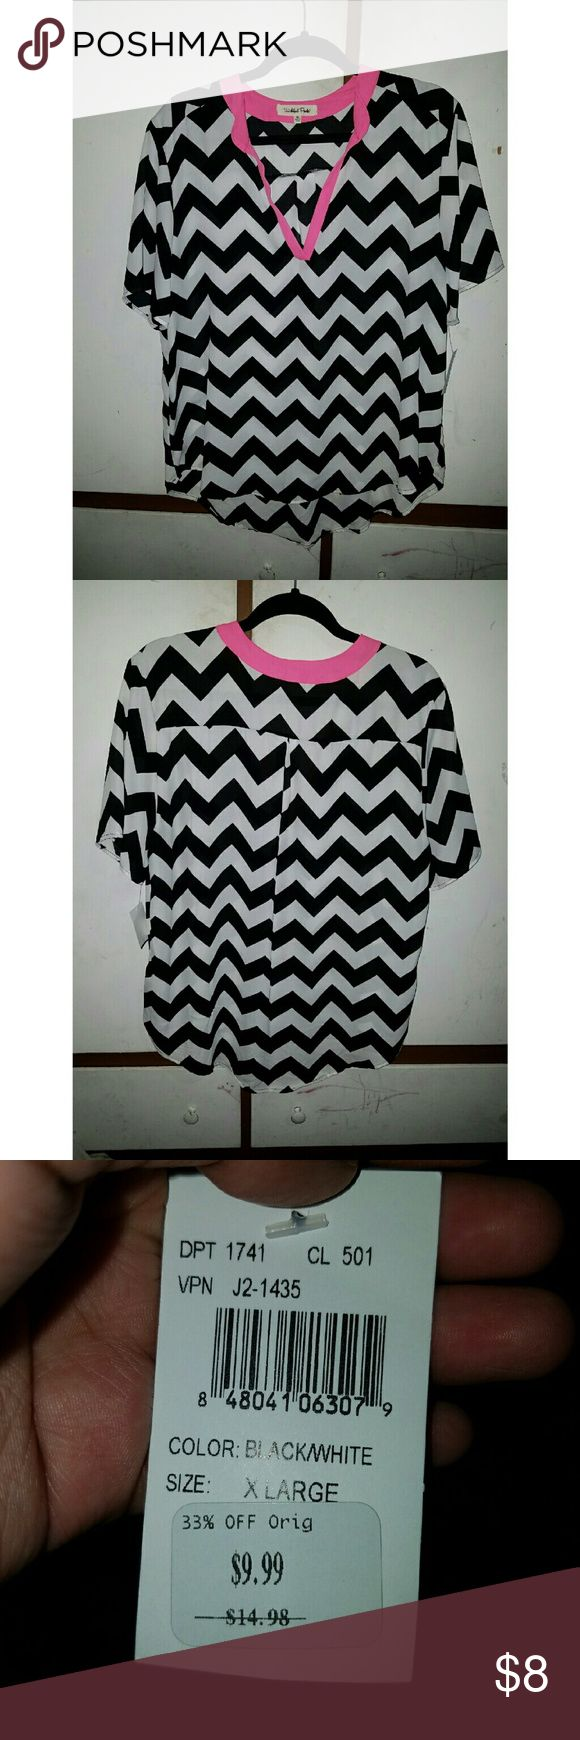 Chevron Blouse Black and white chevron blouse with pink on the collar. Brand new with tags, never worn. Wishful Park Tops Blouses